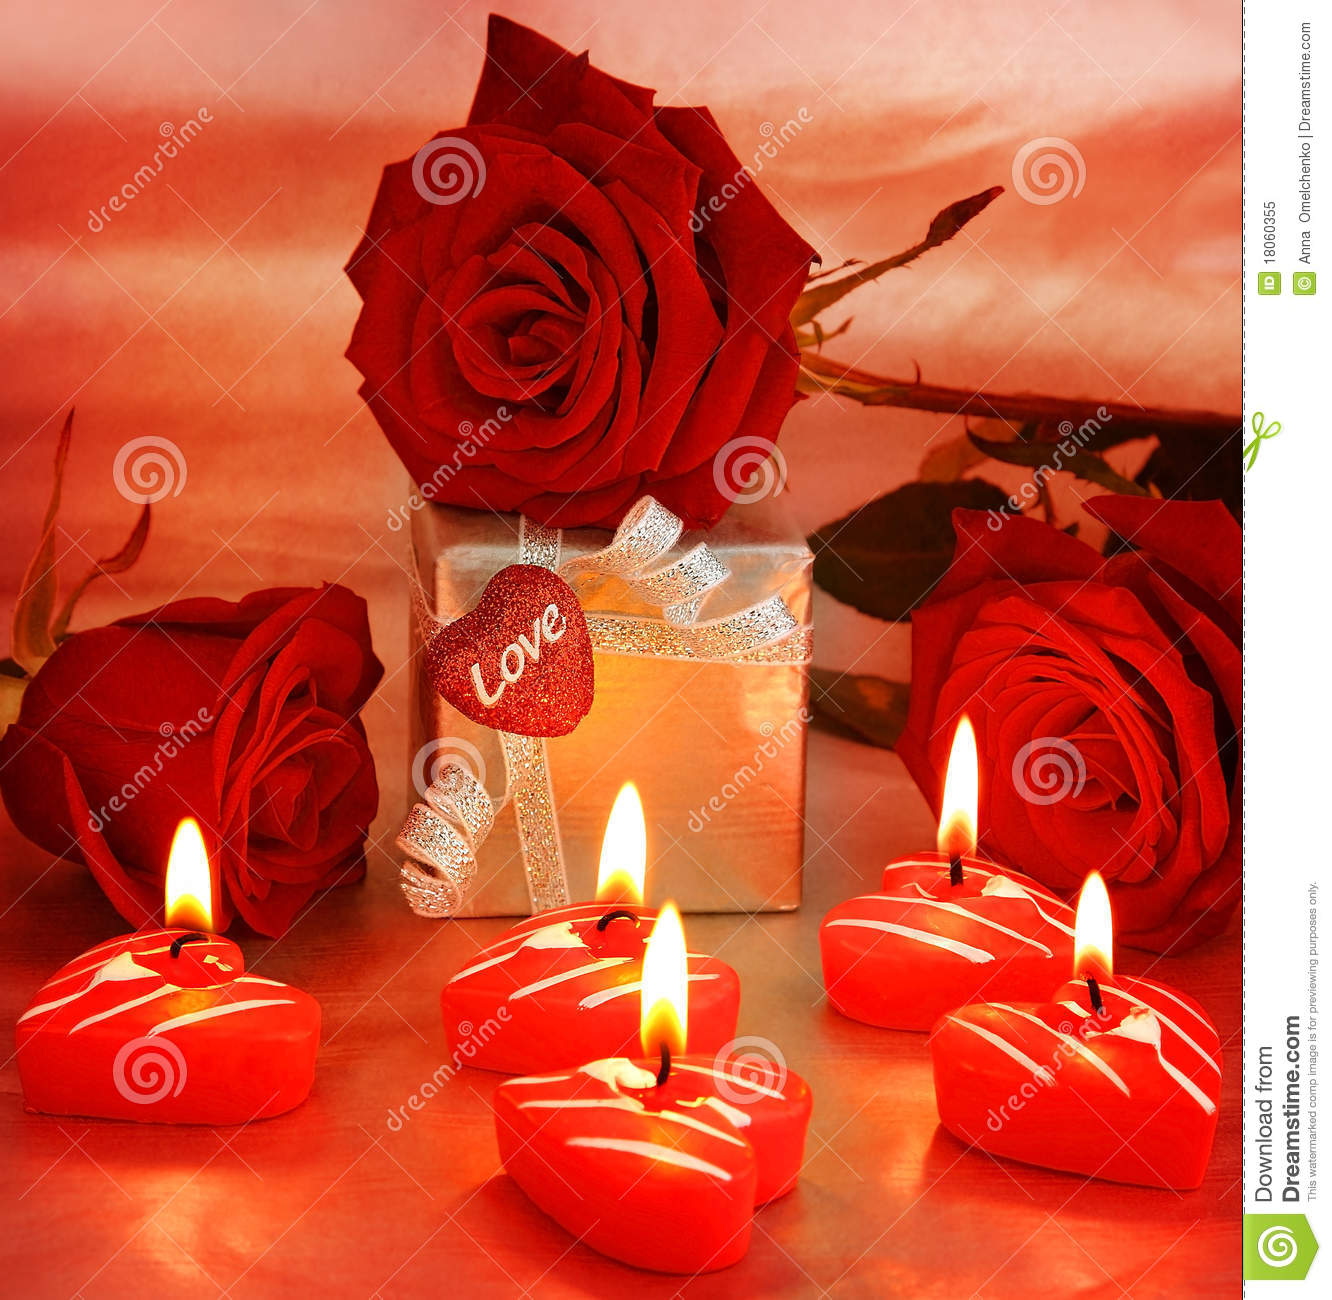 Beautiful roses with gift box heart stock image image of beautiful roses with gift box heart negle Choice Image